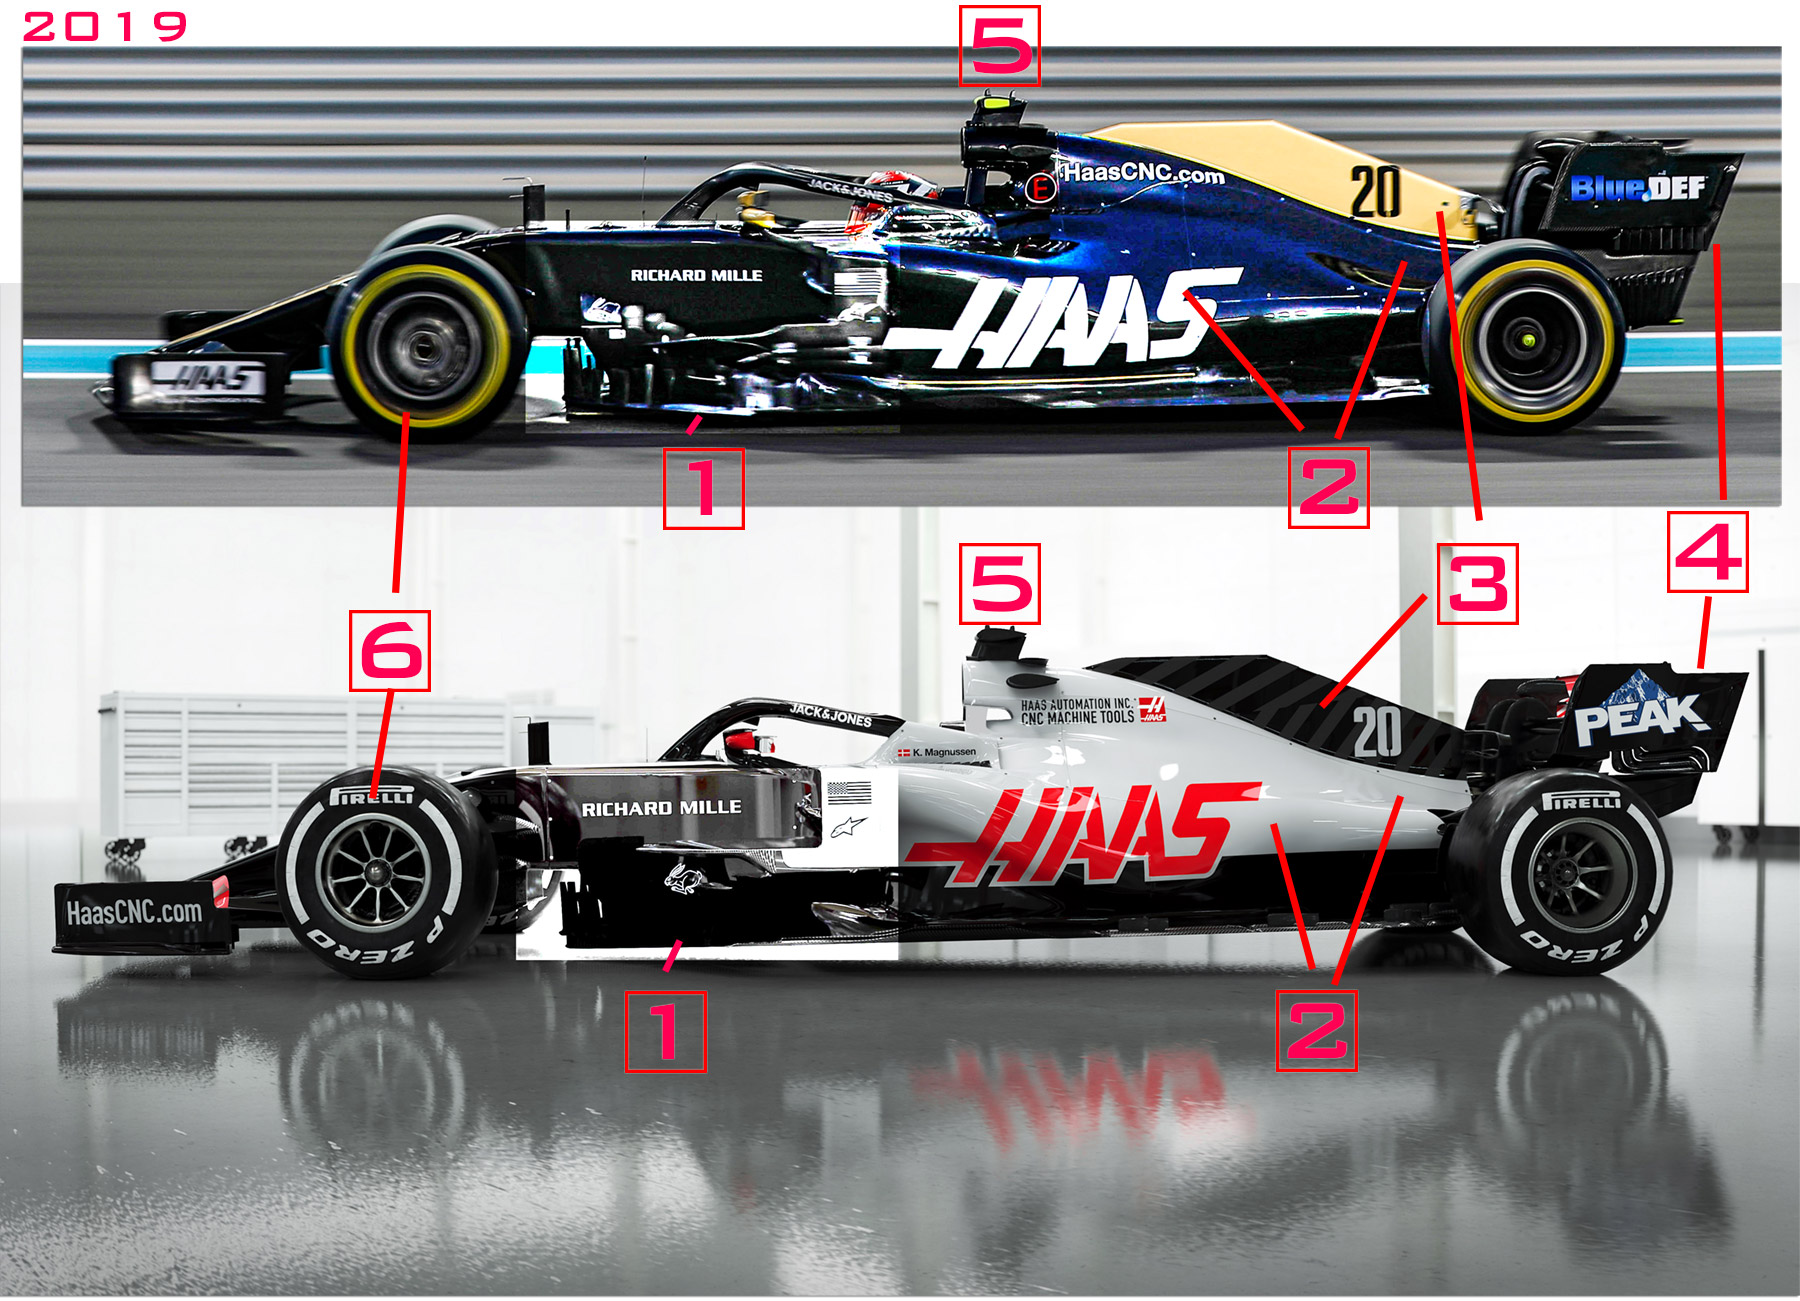 haas-vf20-vista-lateral.jpg